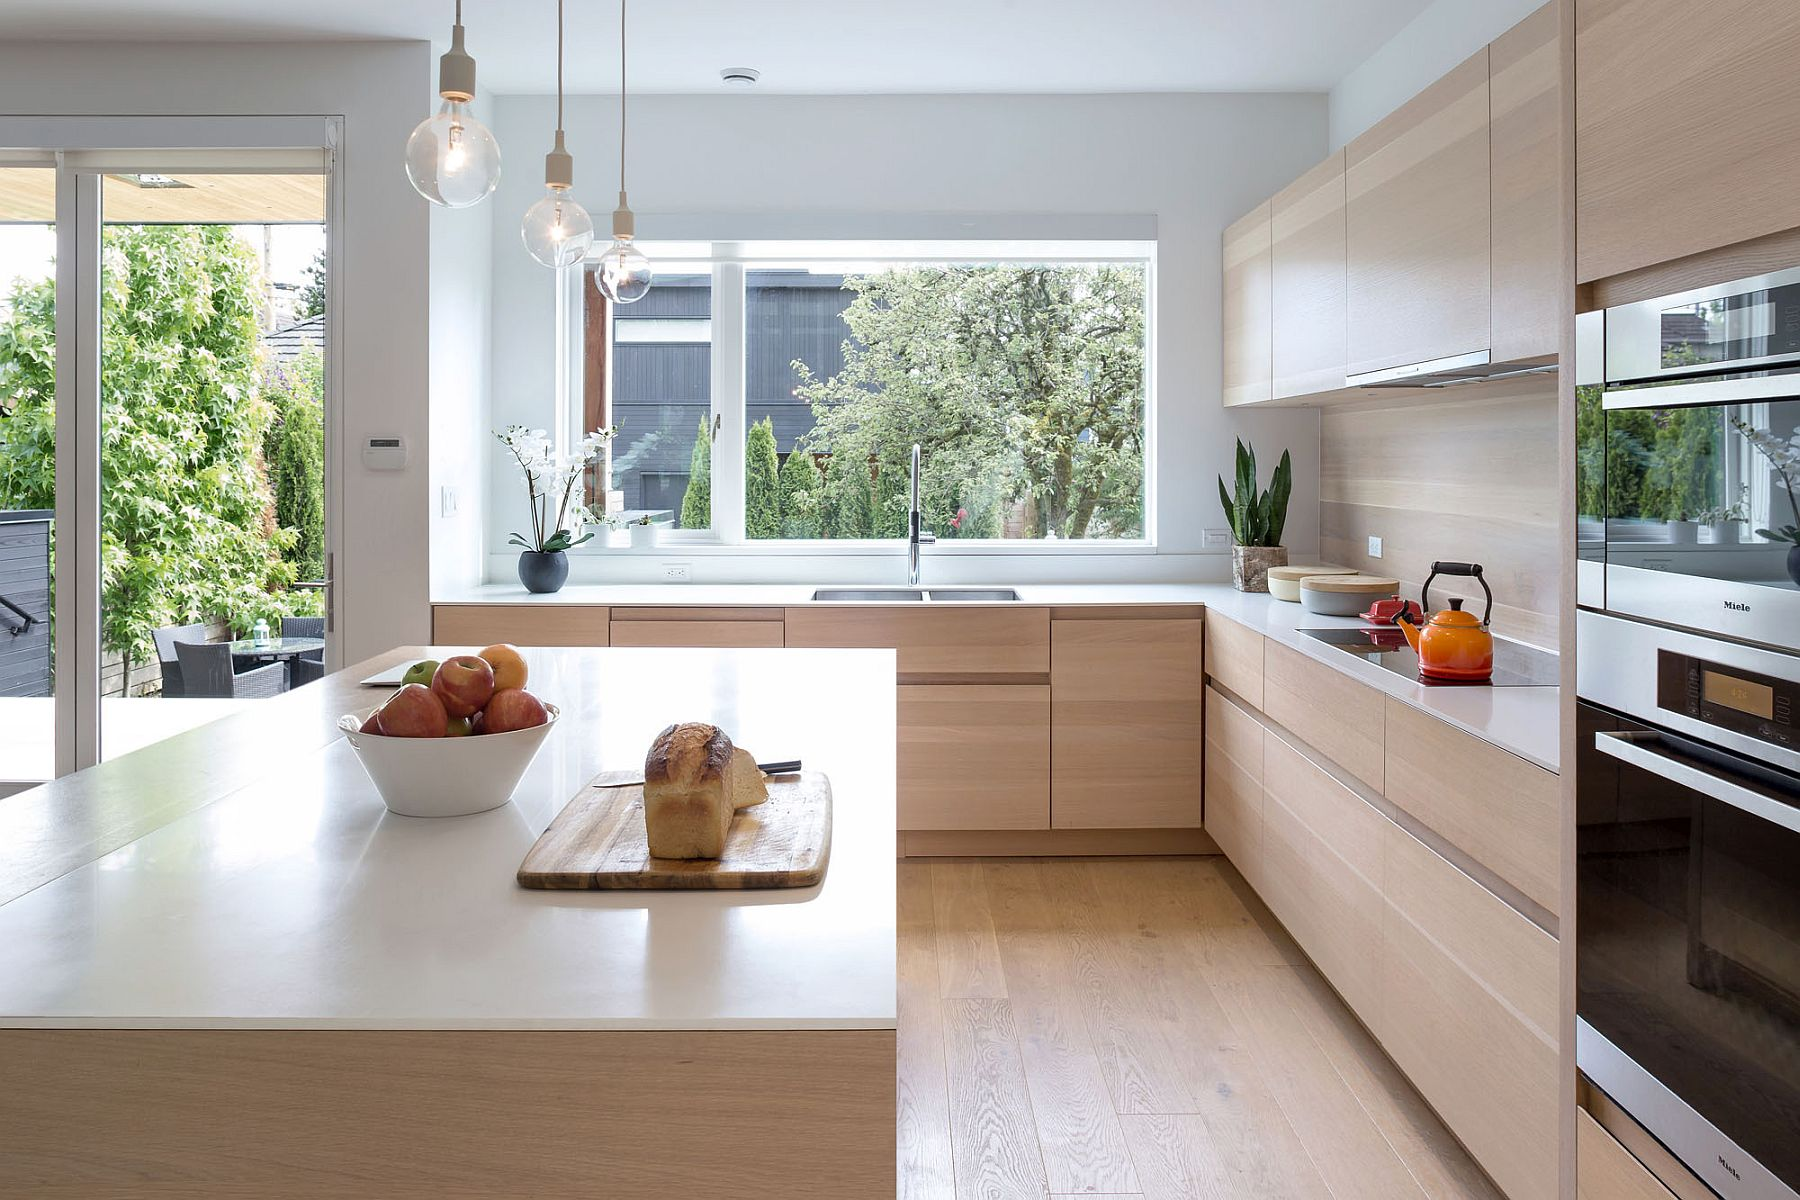 Kitchen that overlooks deck and garden outside